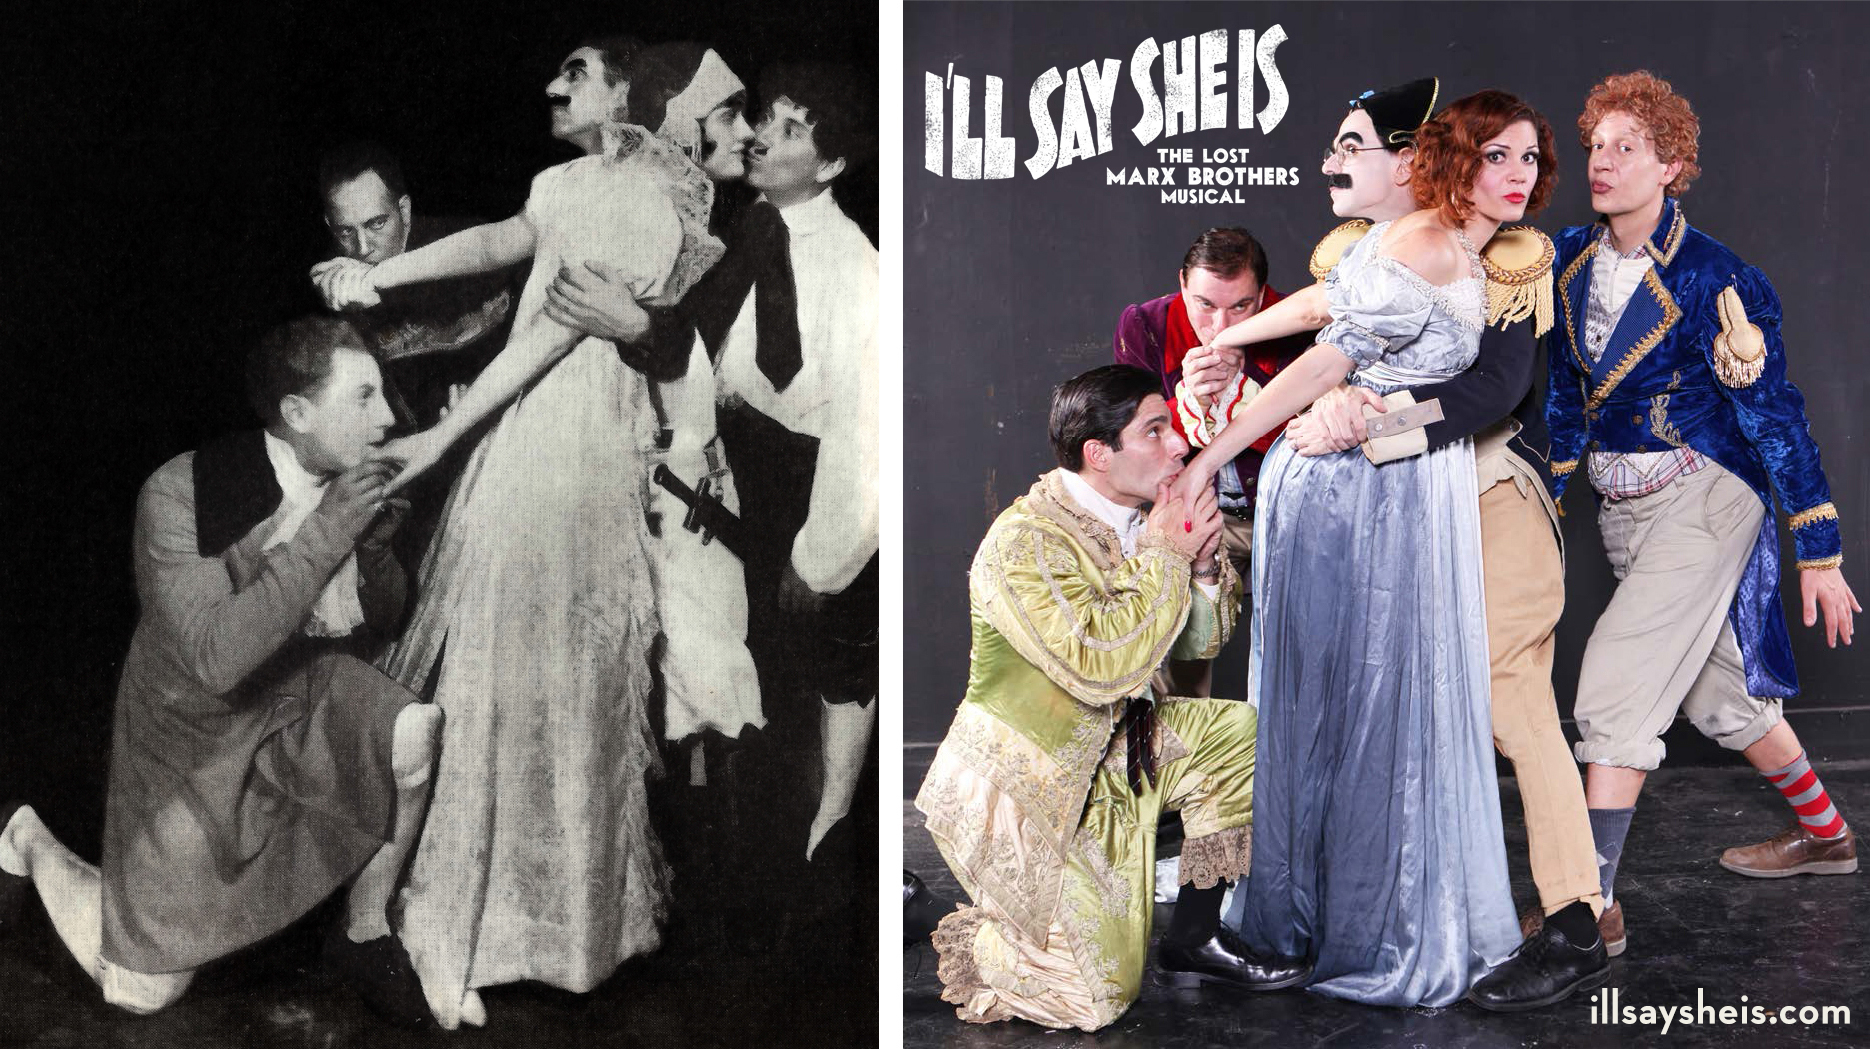 The legendary Napoleon scene from I'll Say She Is, as seen in 1924 and 2014. Photo by Don Spiro.